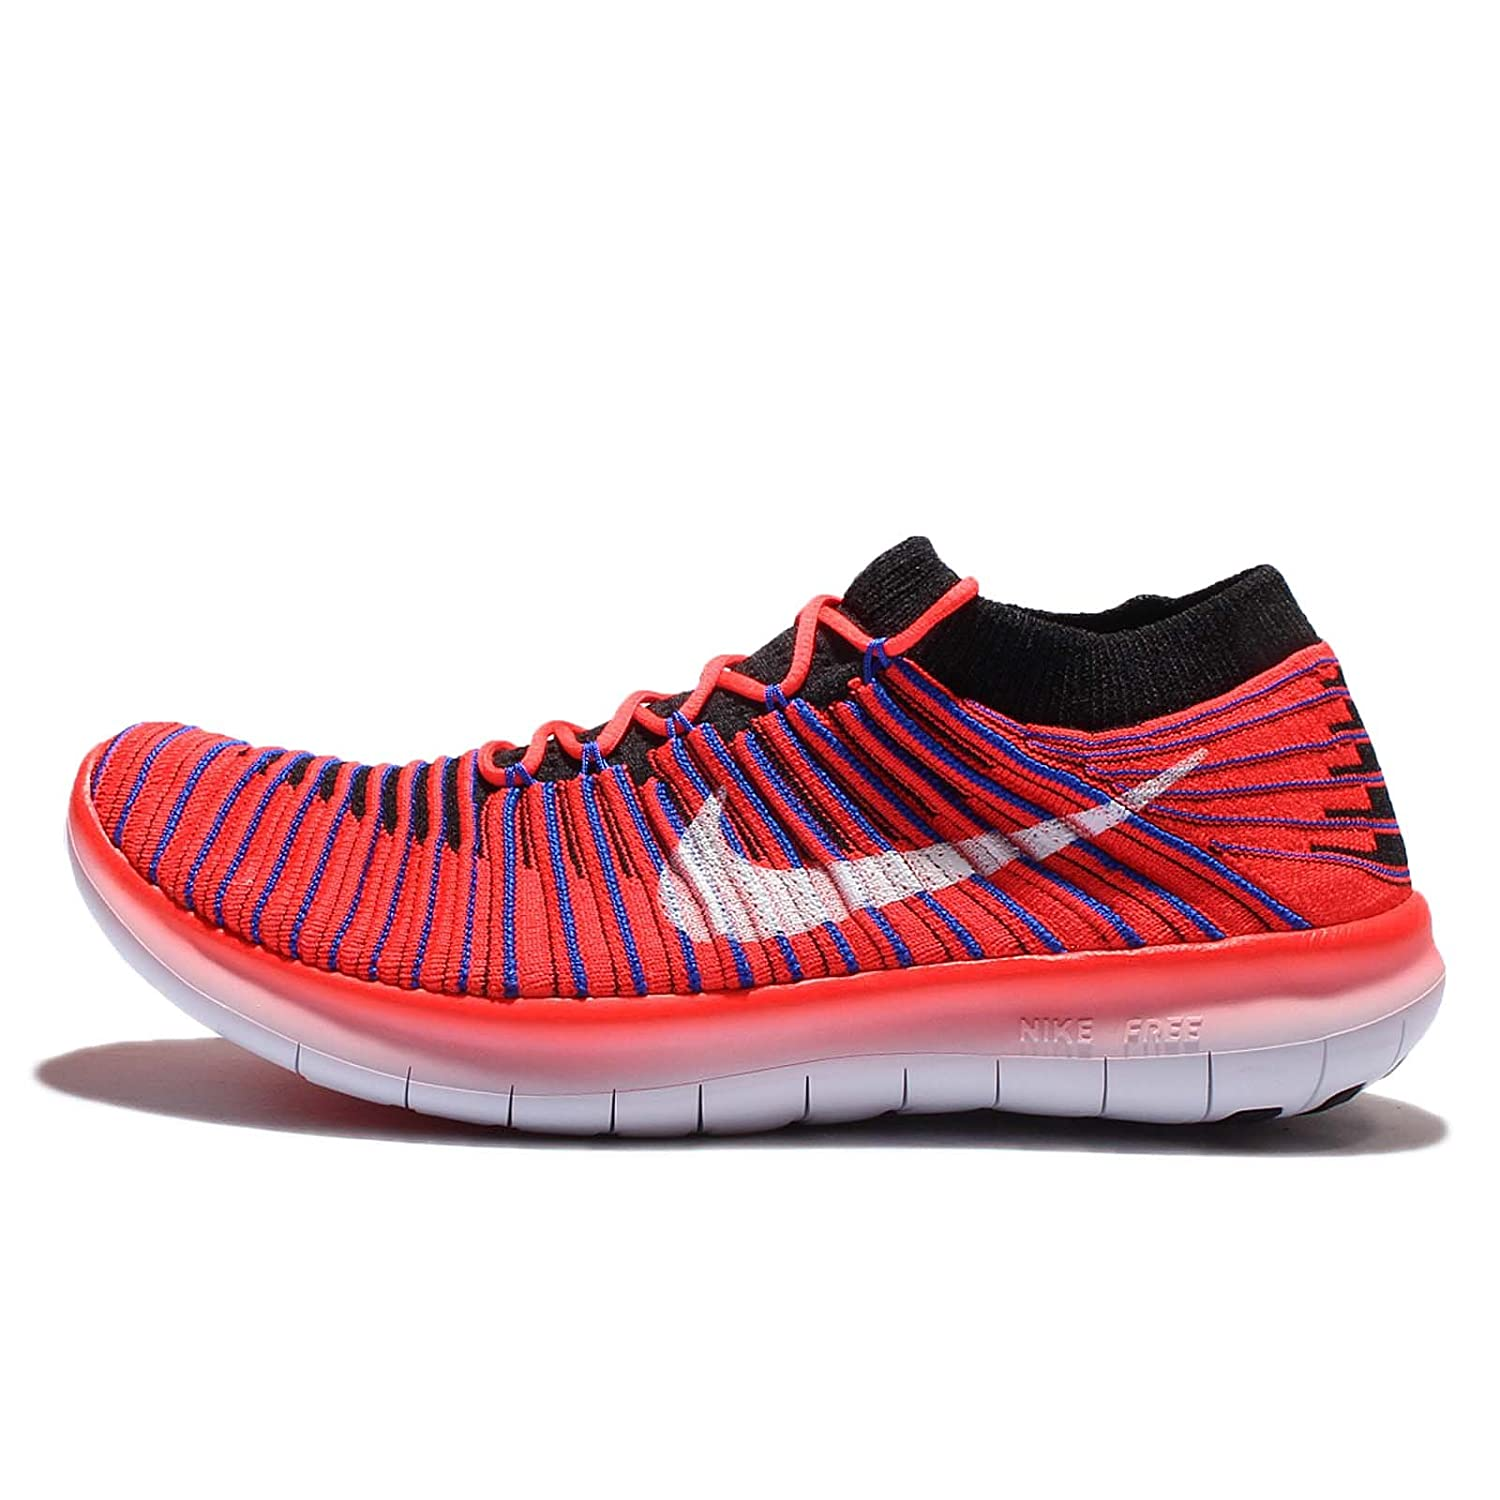 save off d9efd b0f85 Amazon.com   Nike Free Rn Motion Flyknit Running Men s Shoes Size 12   Road  Running